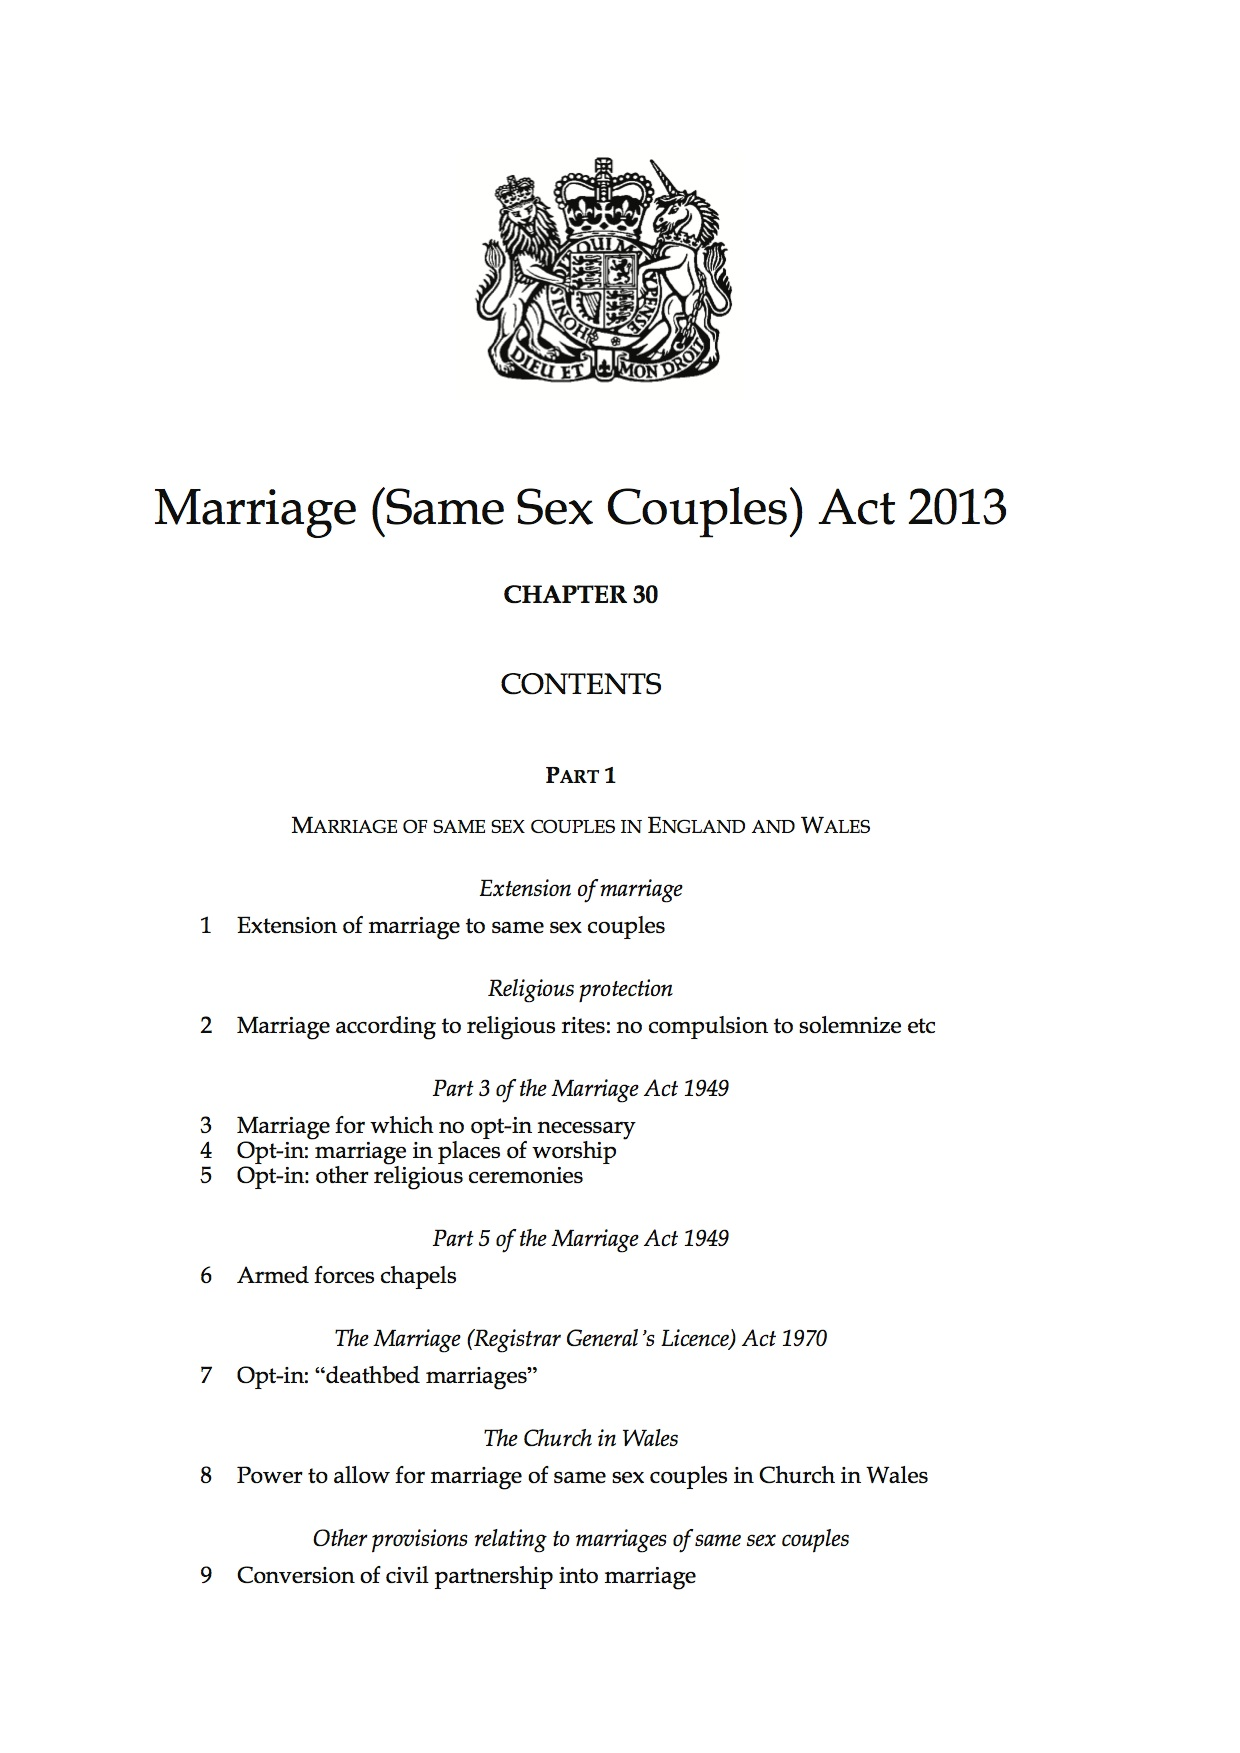 140119-marriage-same-sex-couples-act-2013.jpg